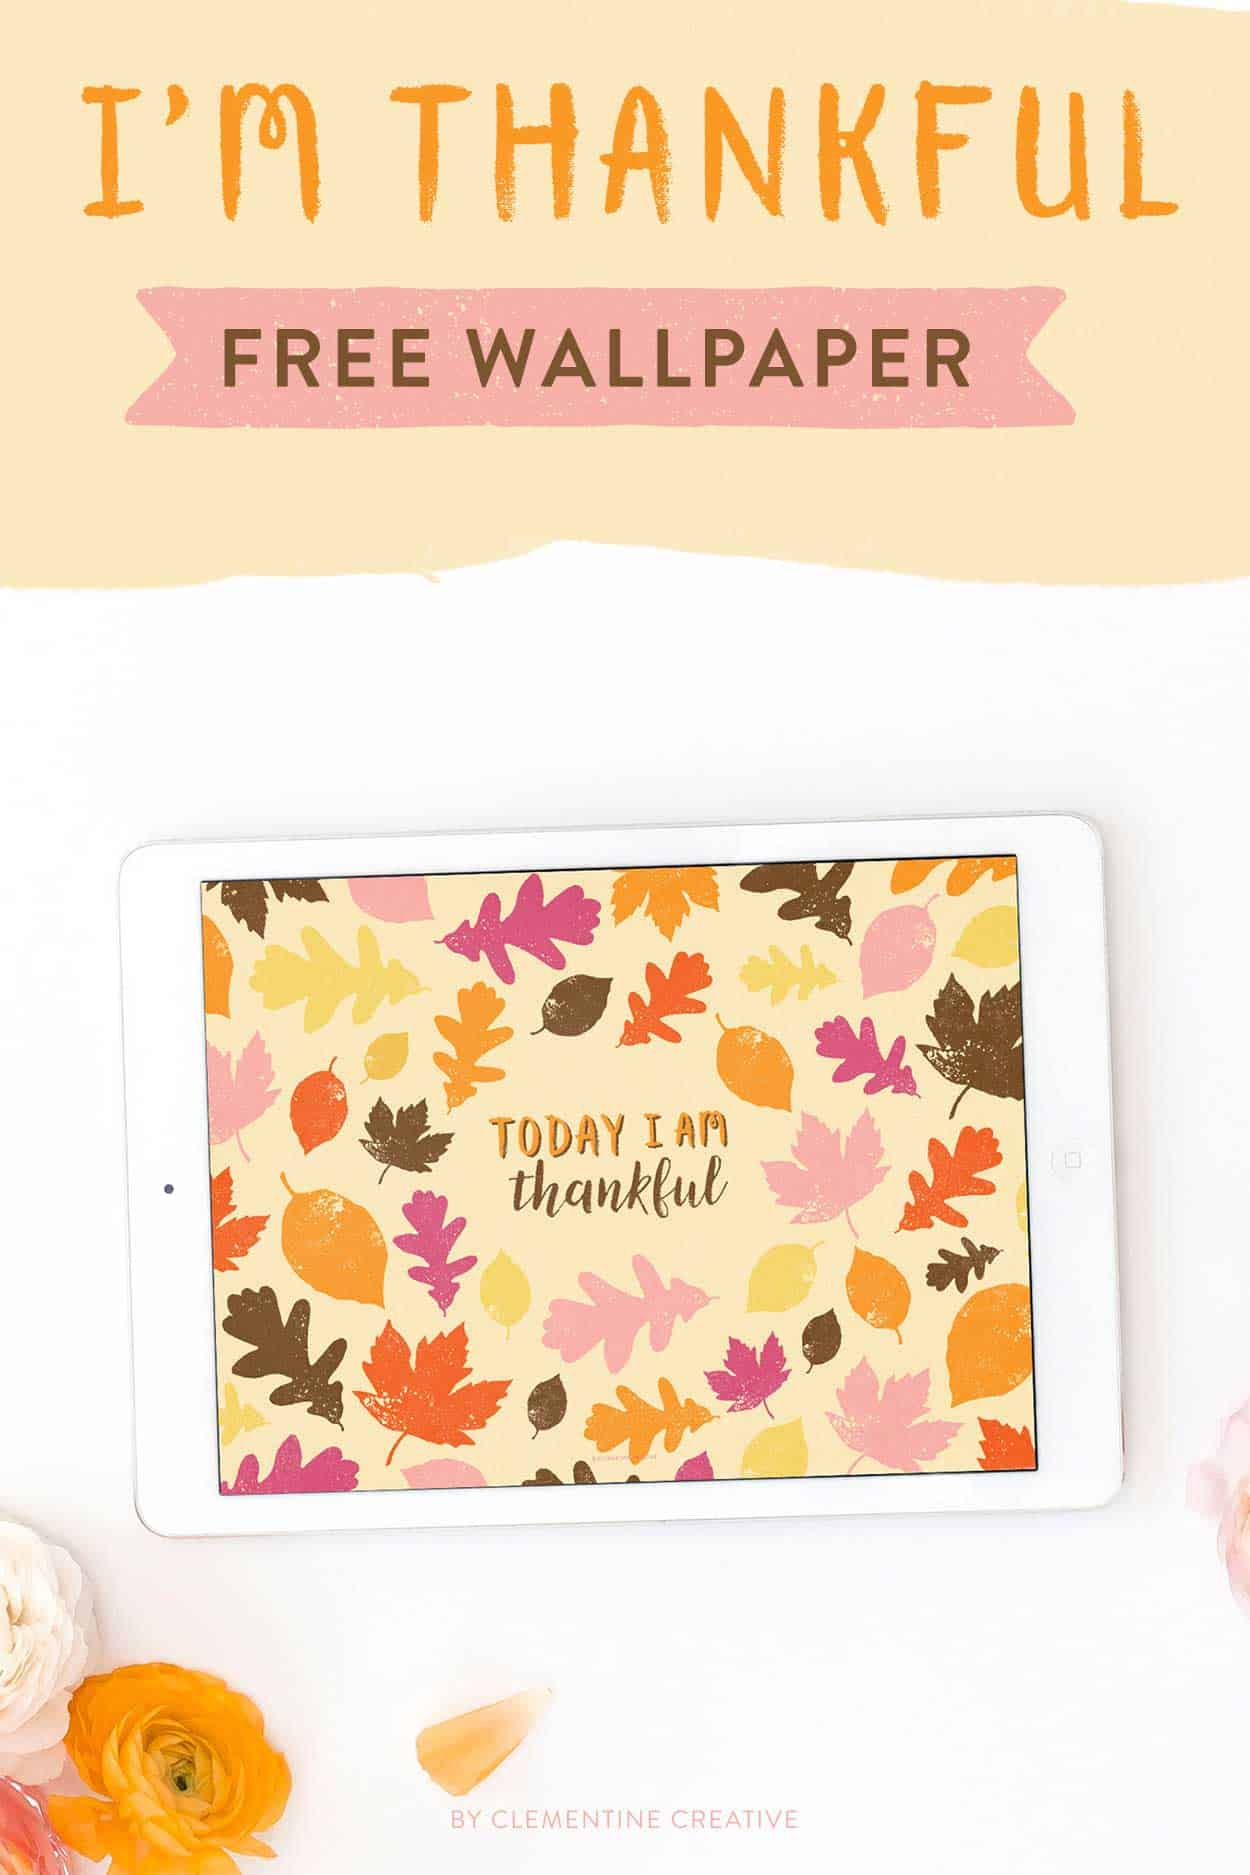 free thanksgiving wallpaper for iPads